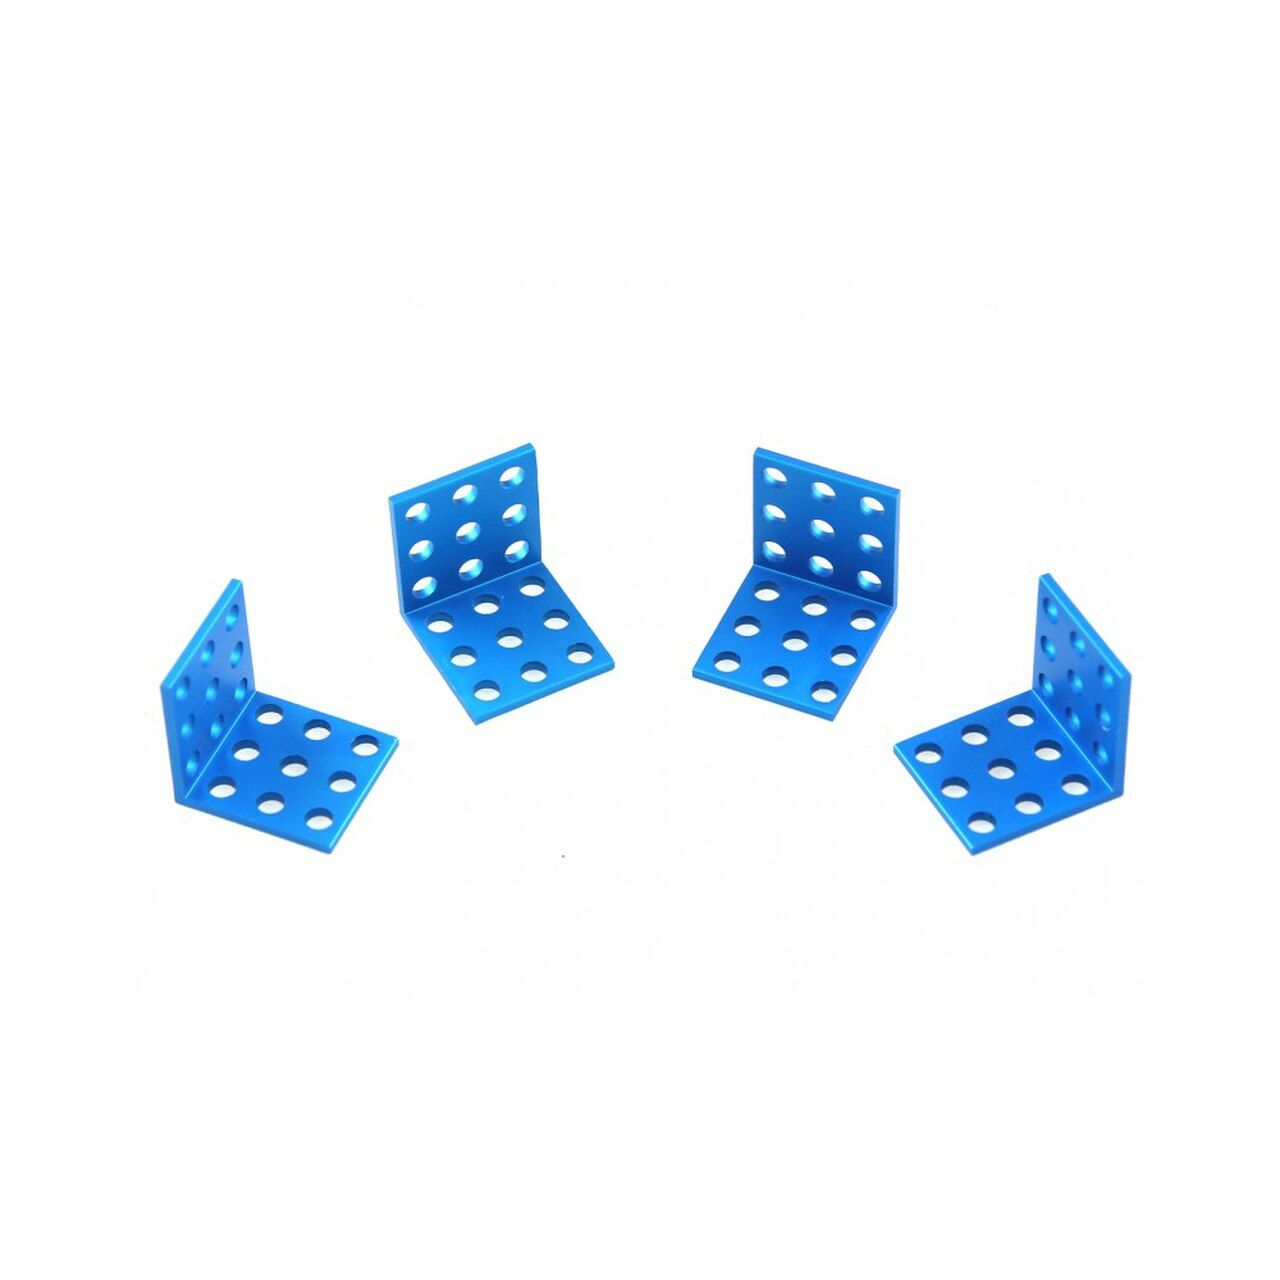 Makeblock Bracket 3x3-Blue (4-Pack)